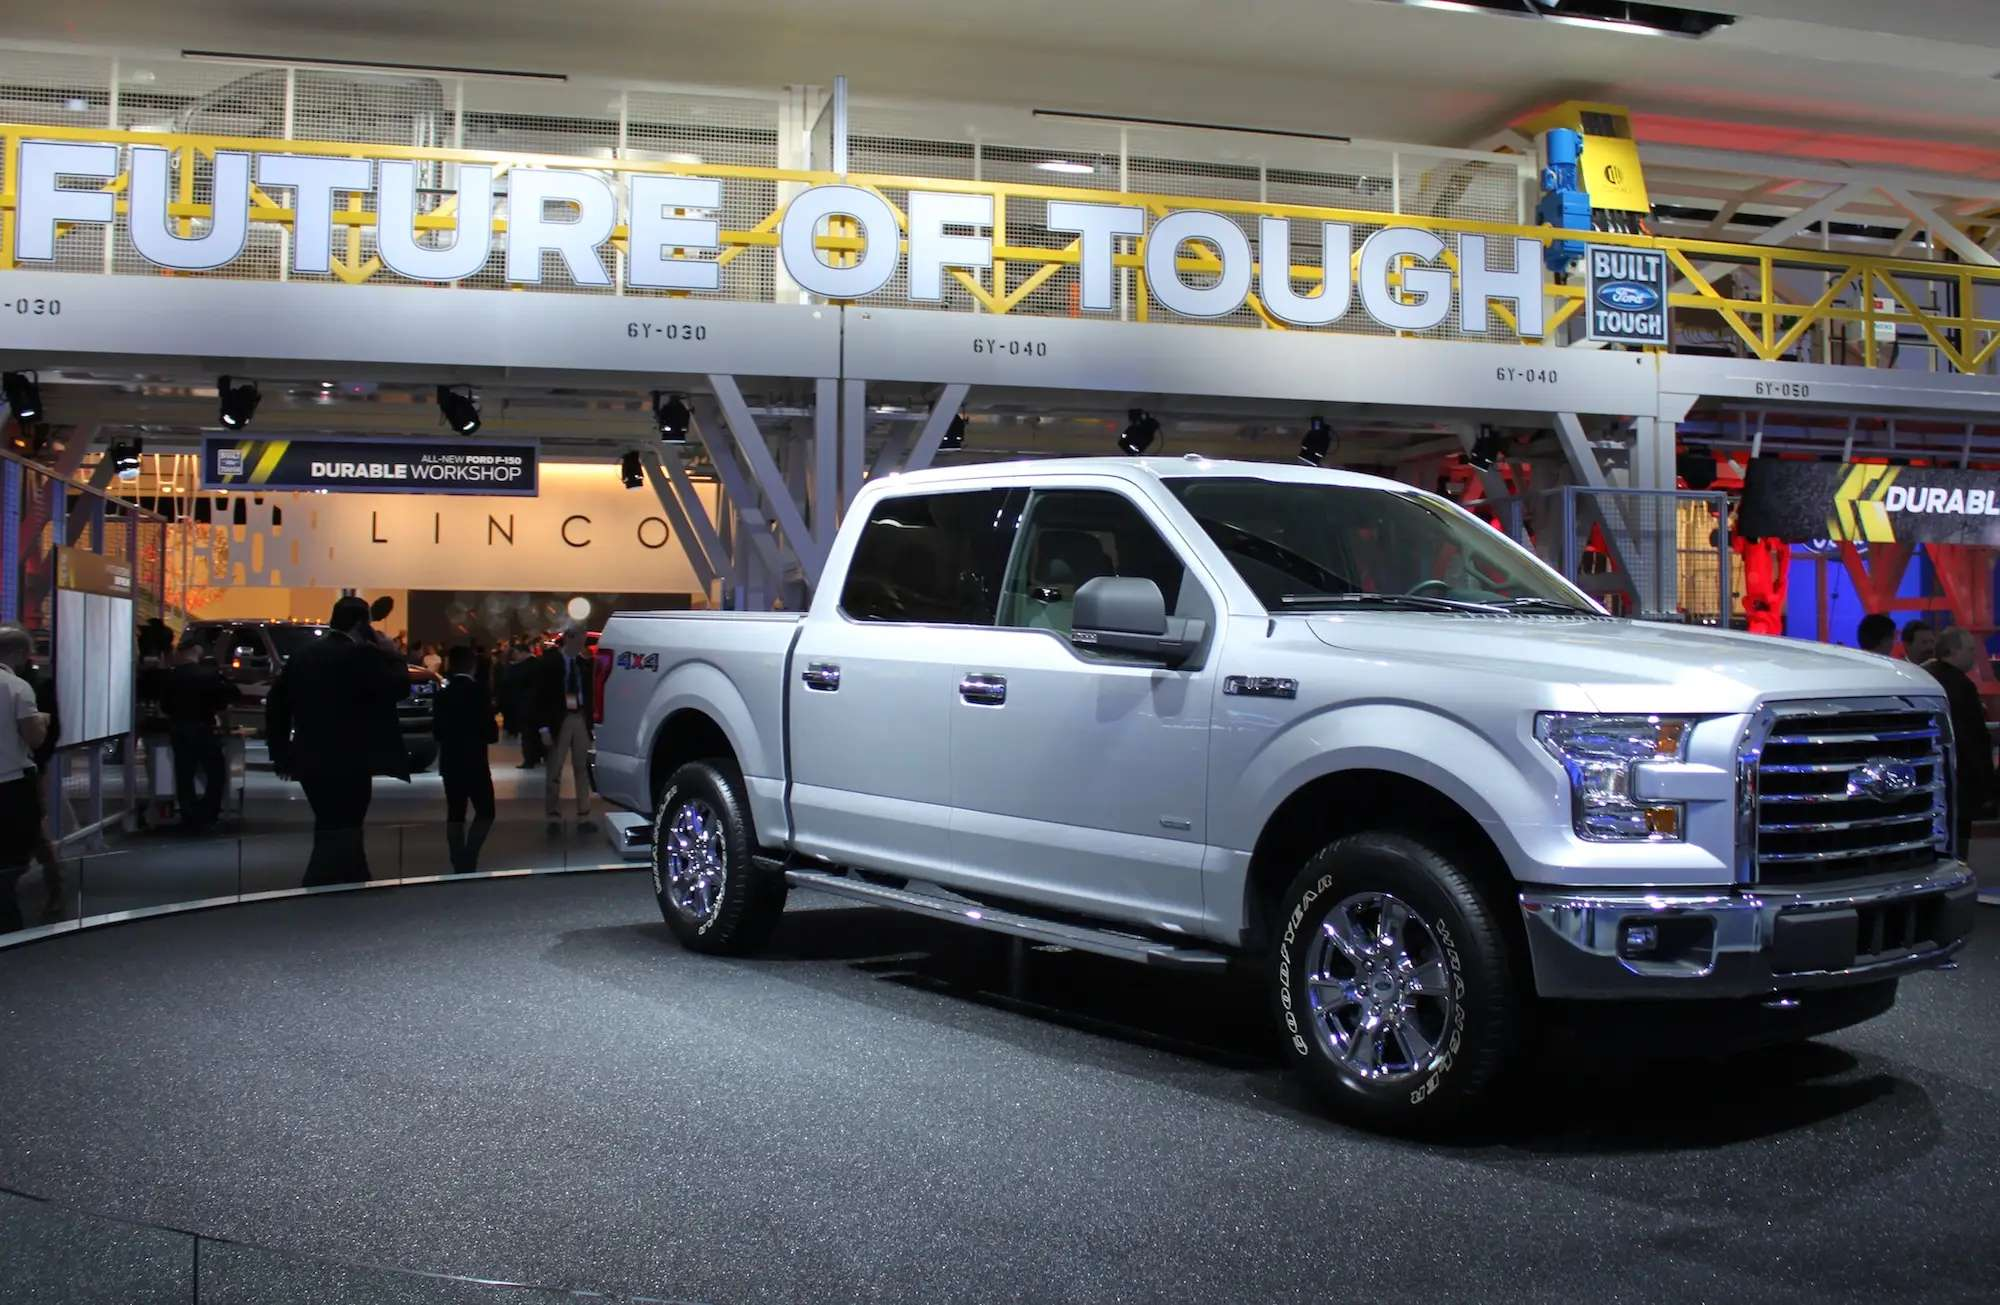 The new Ford F-150 isn't the sleekest ride in Detroit, but it's the most important. A perennial best-seller, the upgraded pickup truck comes with an aluminum body that cuts weight and improves fuel economy. But this is no weakling — Ford promises it's the